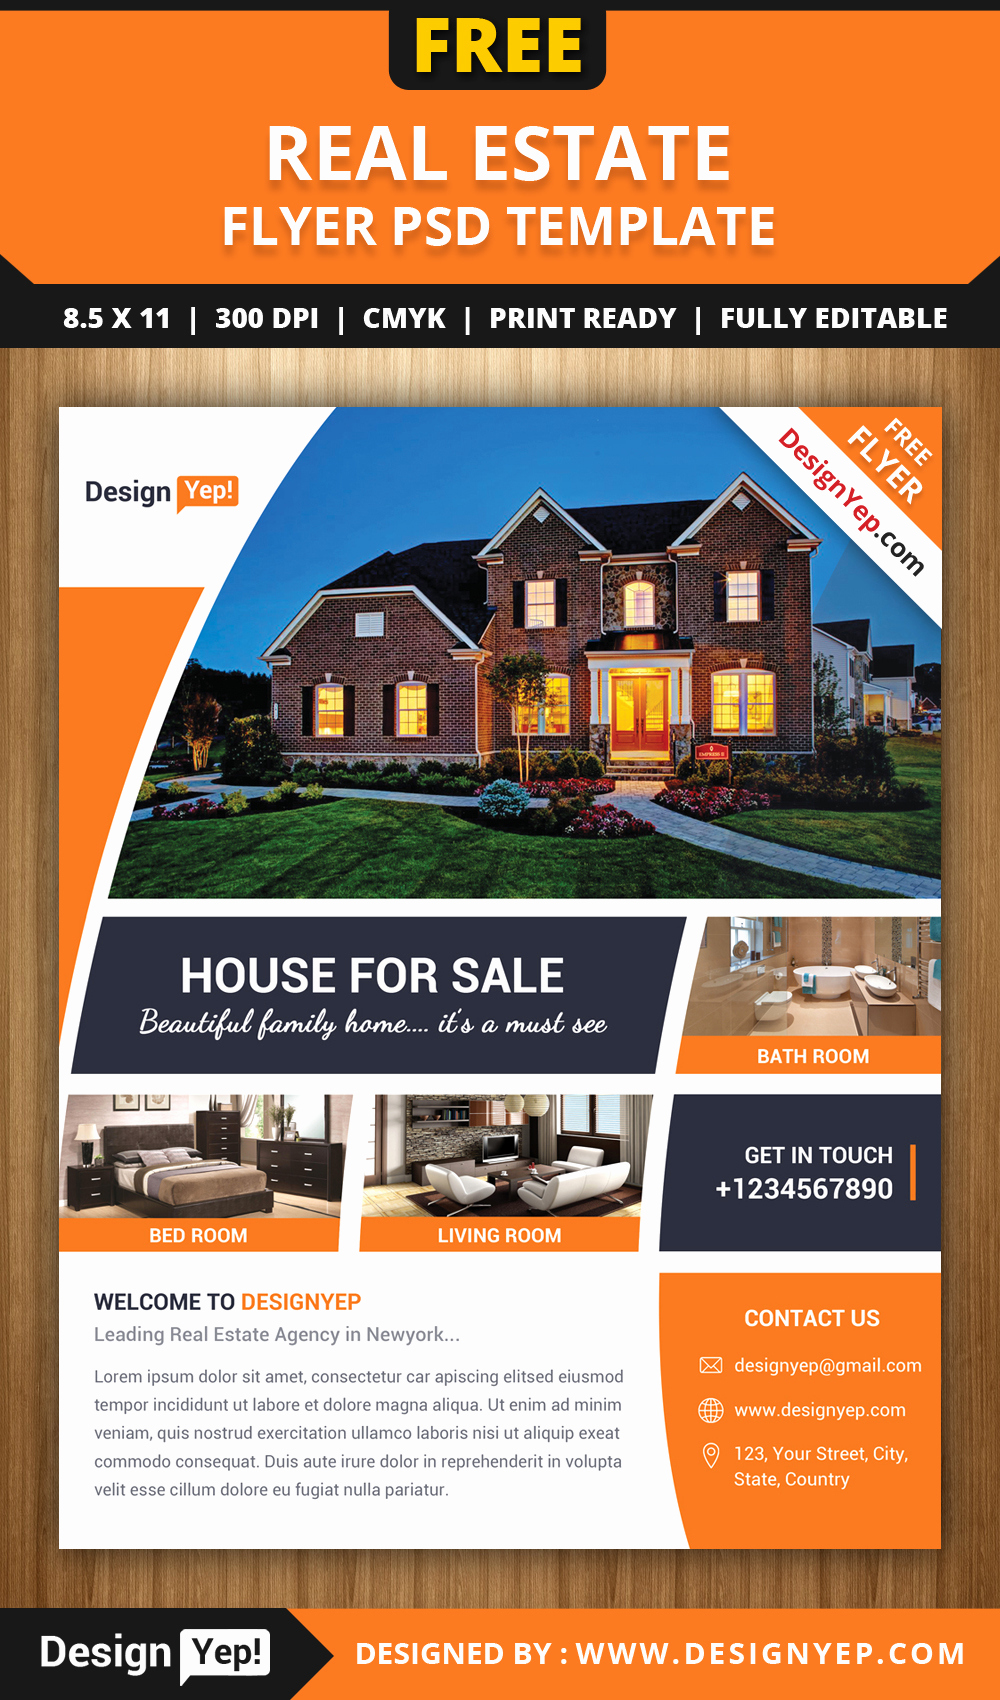 Free Download Flyer Template Awesome Free Real Estate Flyer Psd Template Designyep